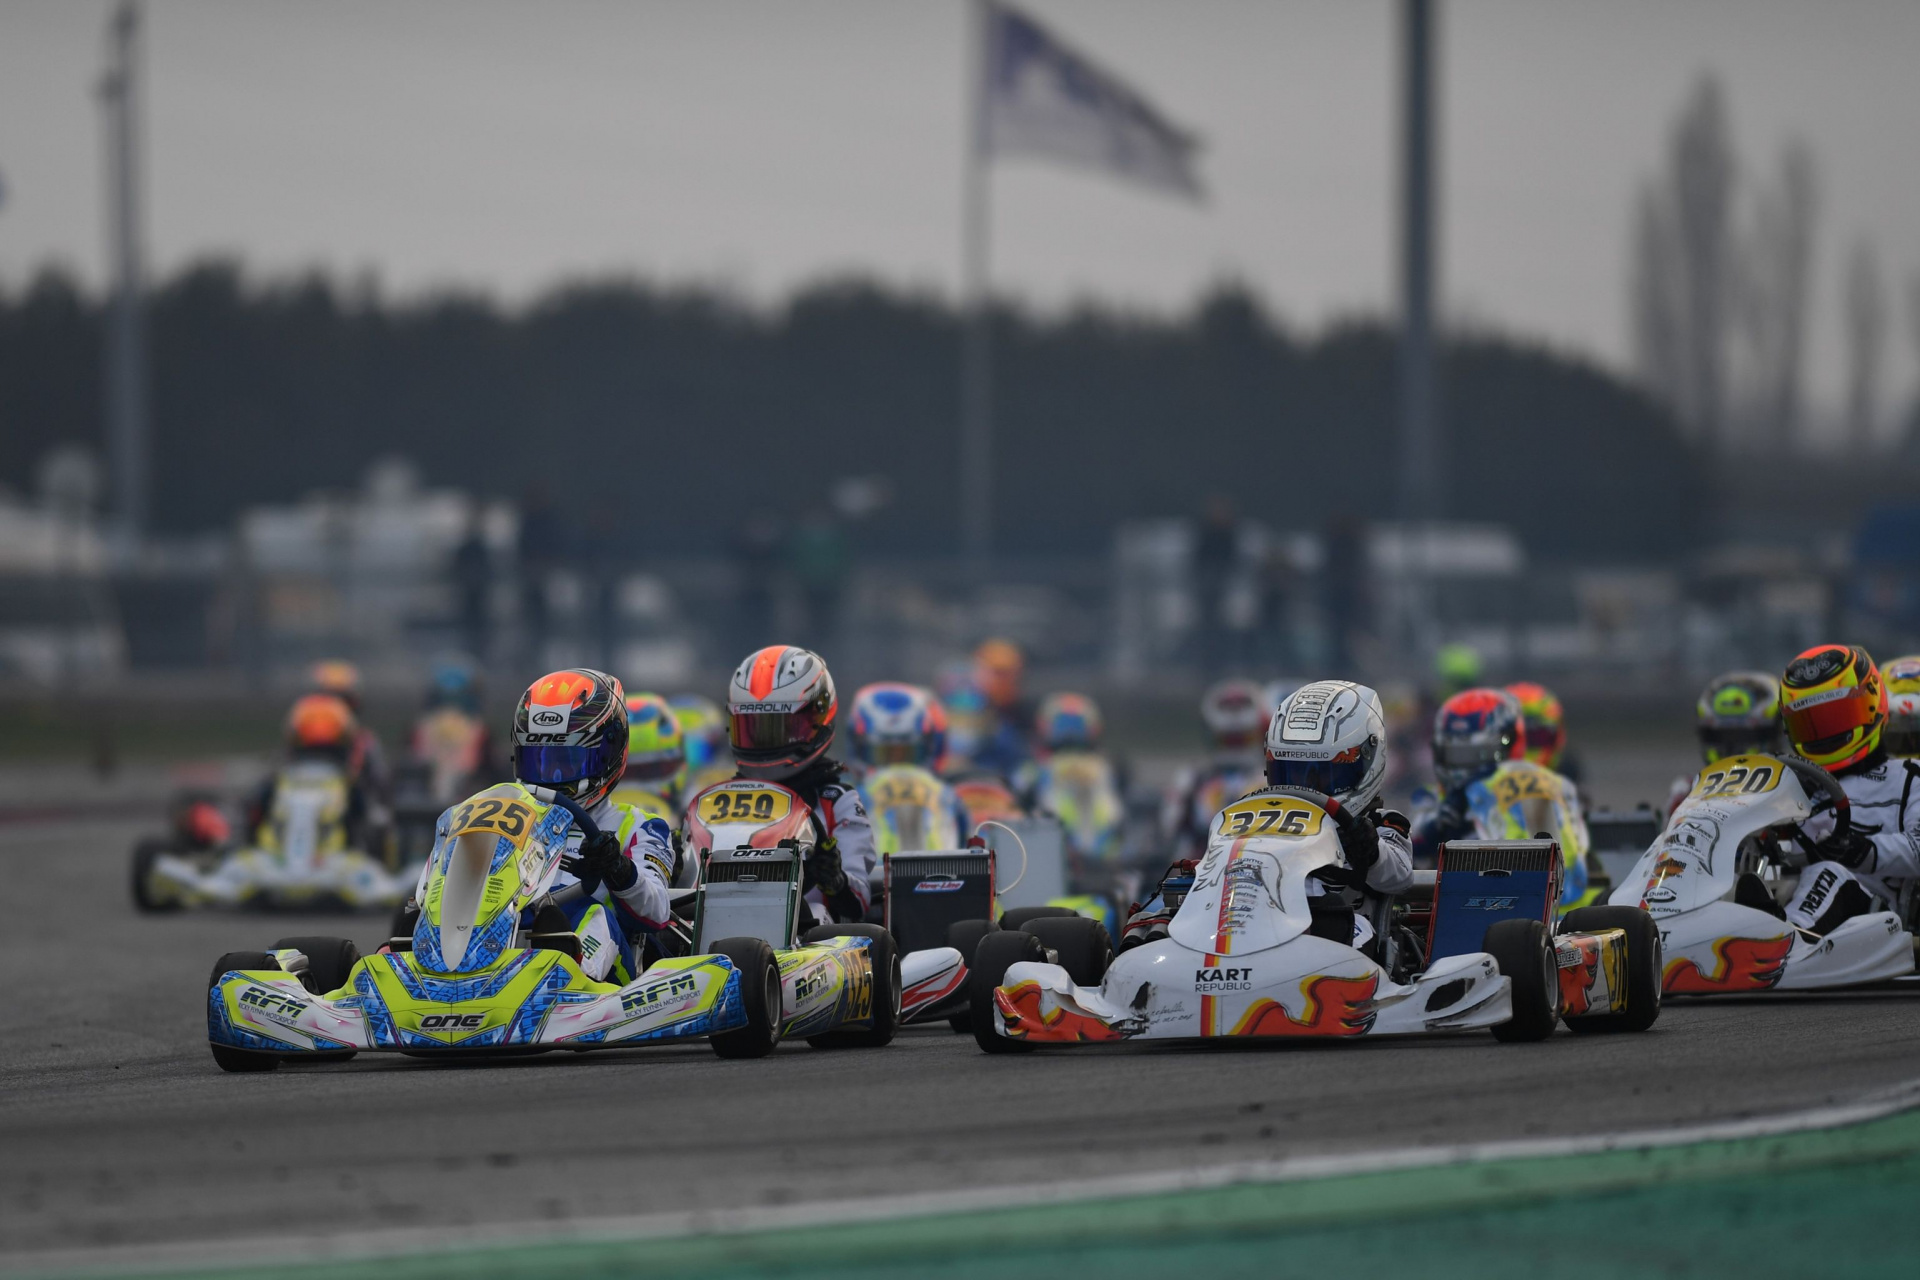 Top performance for Rehm at the WSK Champions Cup